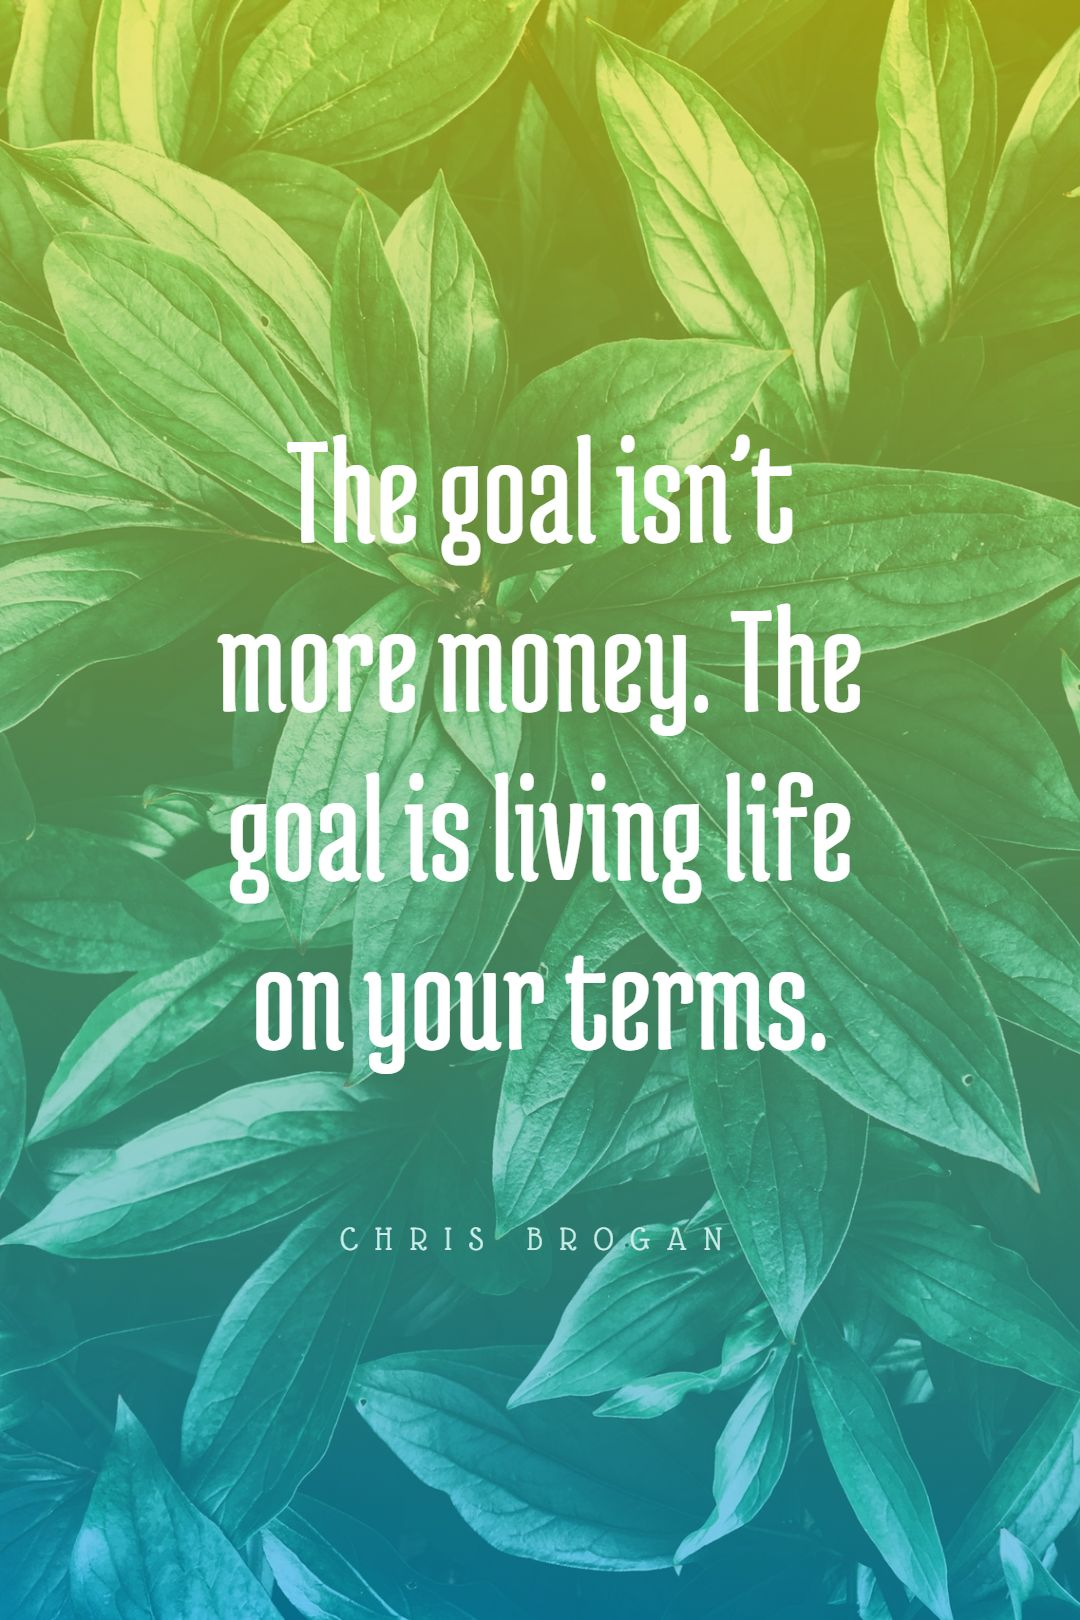 Quotes image of The goal isn't more money. The goal is living life on your terms.